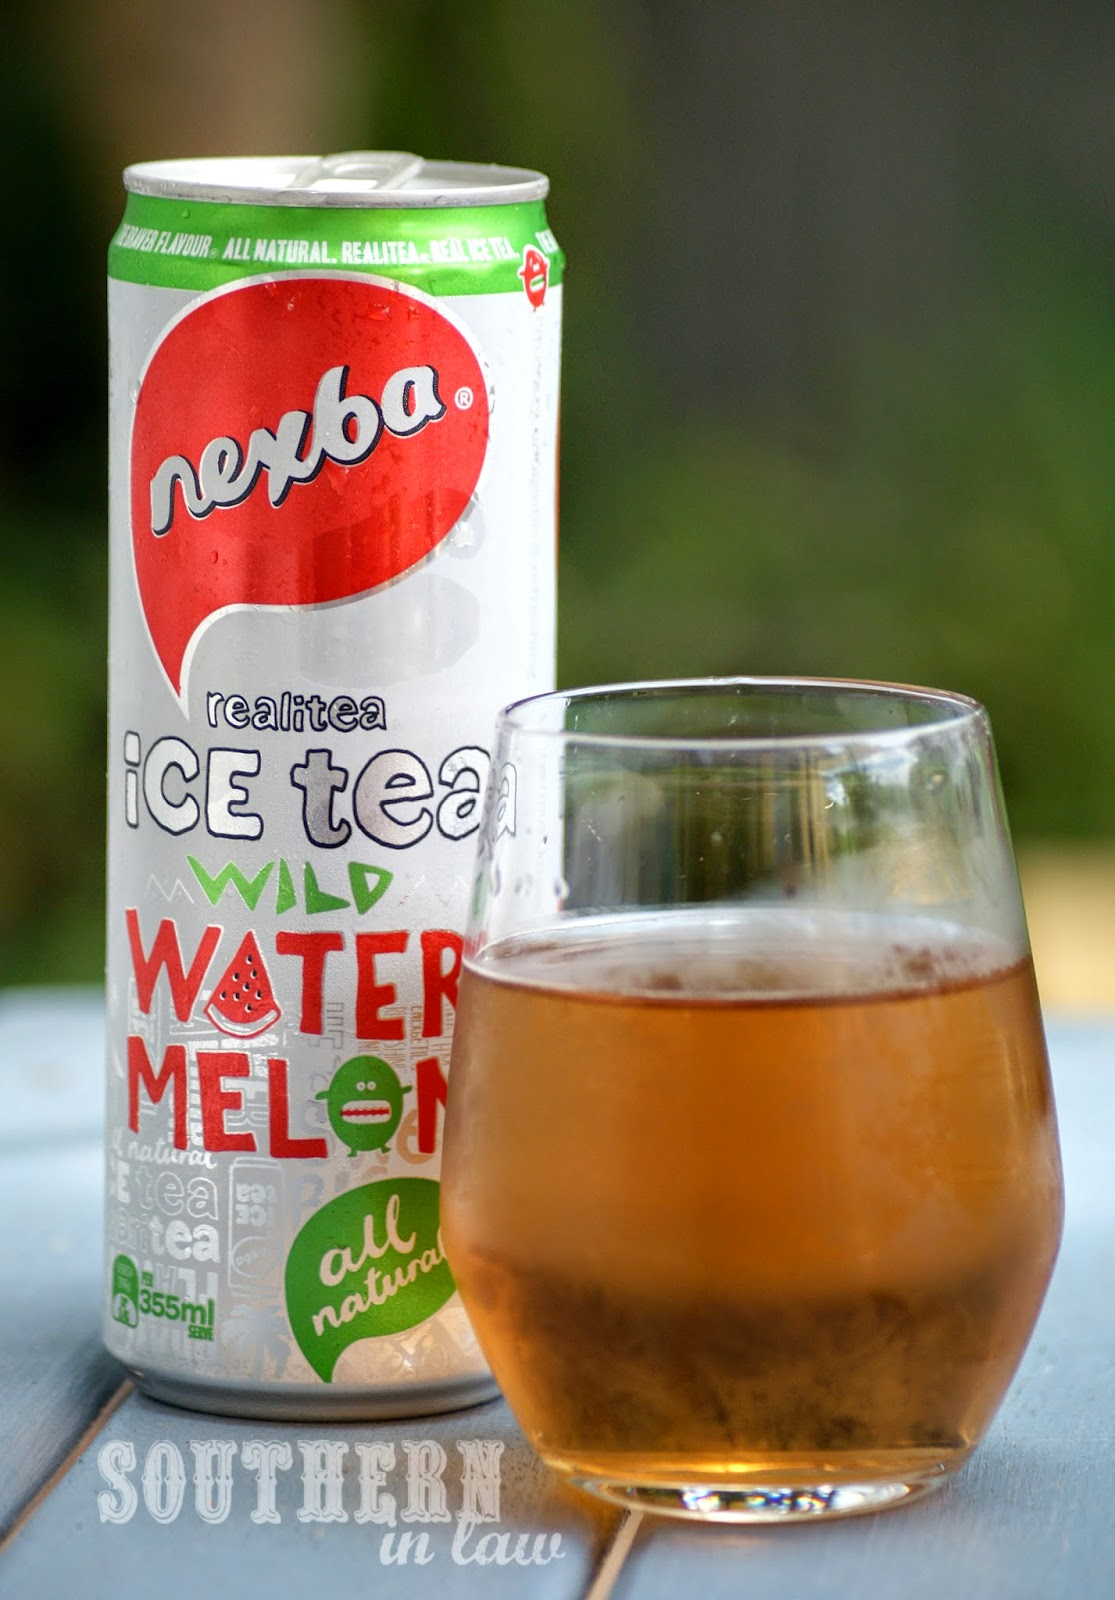 Nexba Watermelon Iced Tea